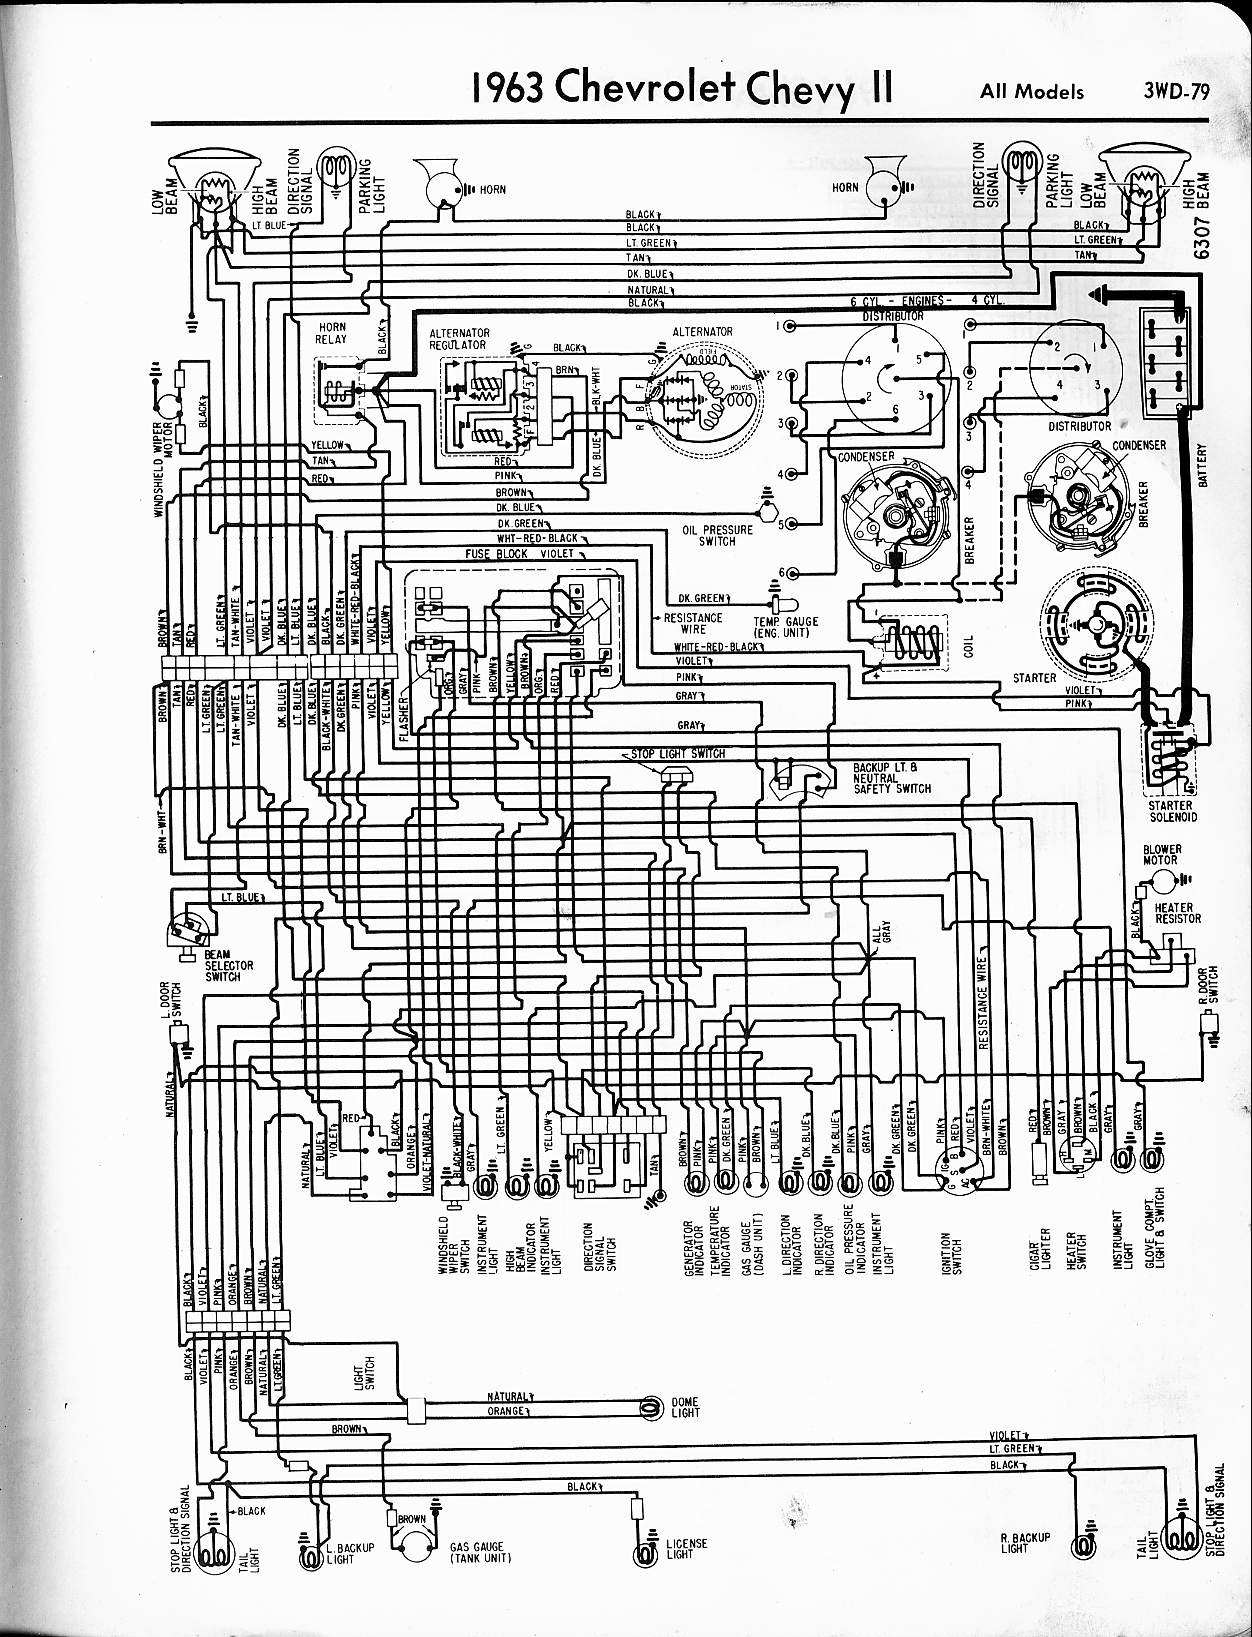 MWireChev63_3WD 079 57 65 chevy wiring diagrams 1970 chevelle wiring harness diagram at soozxer.org